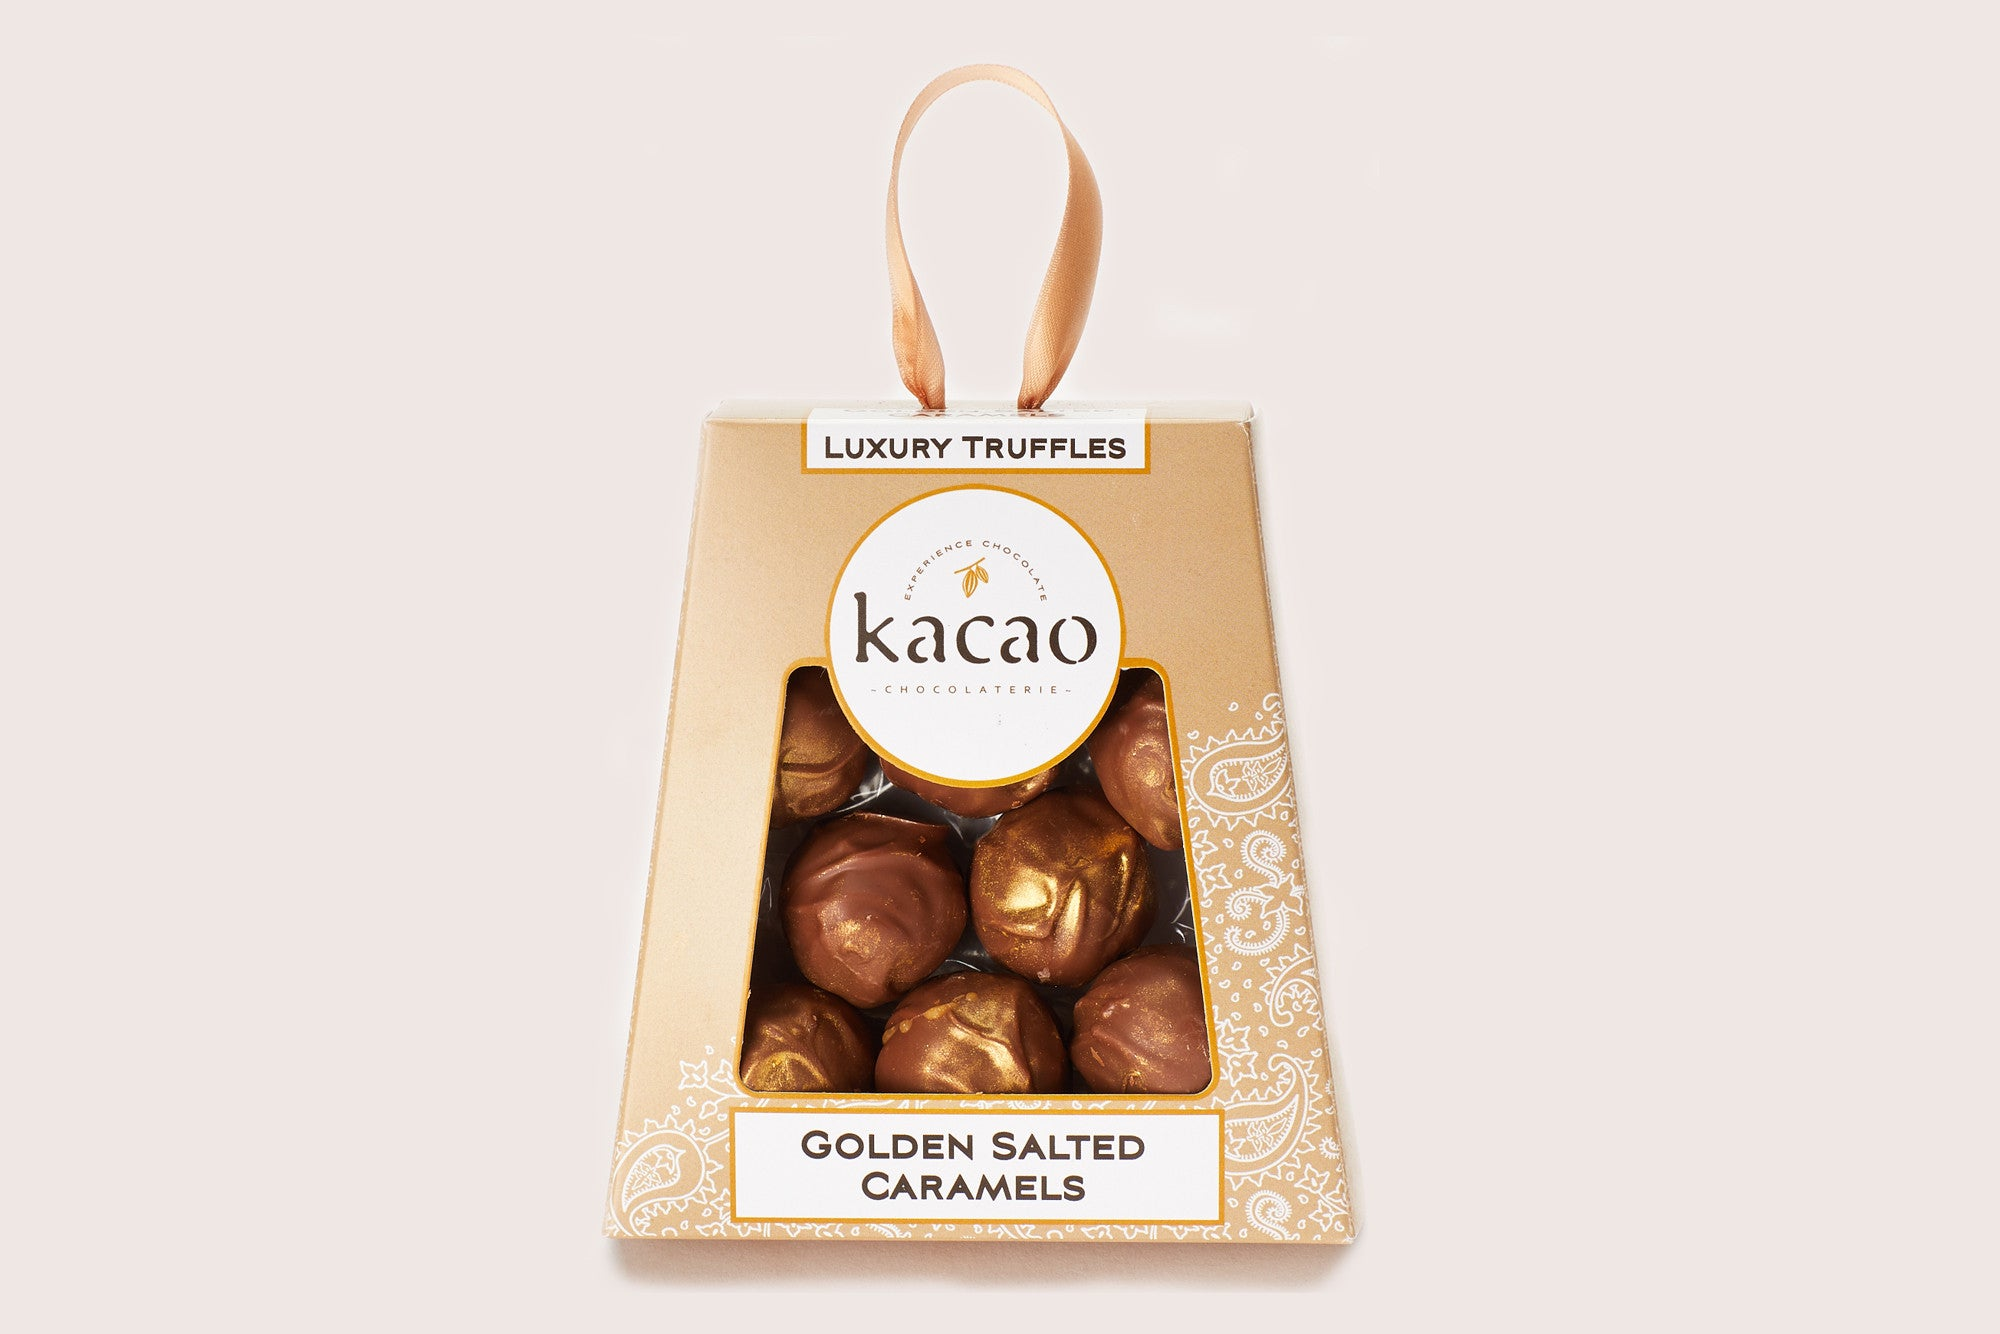 Golden Salted Caramel Truffles